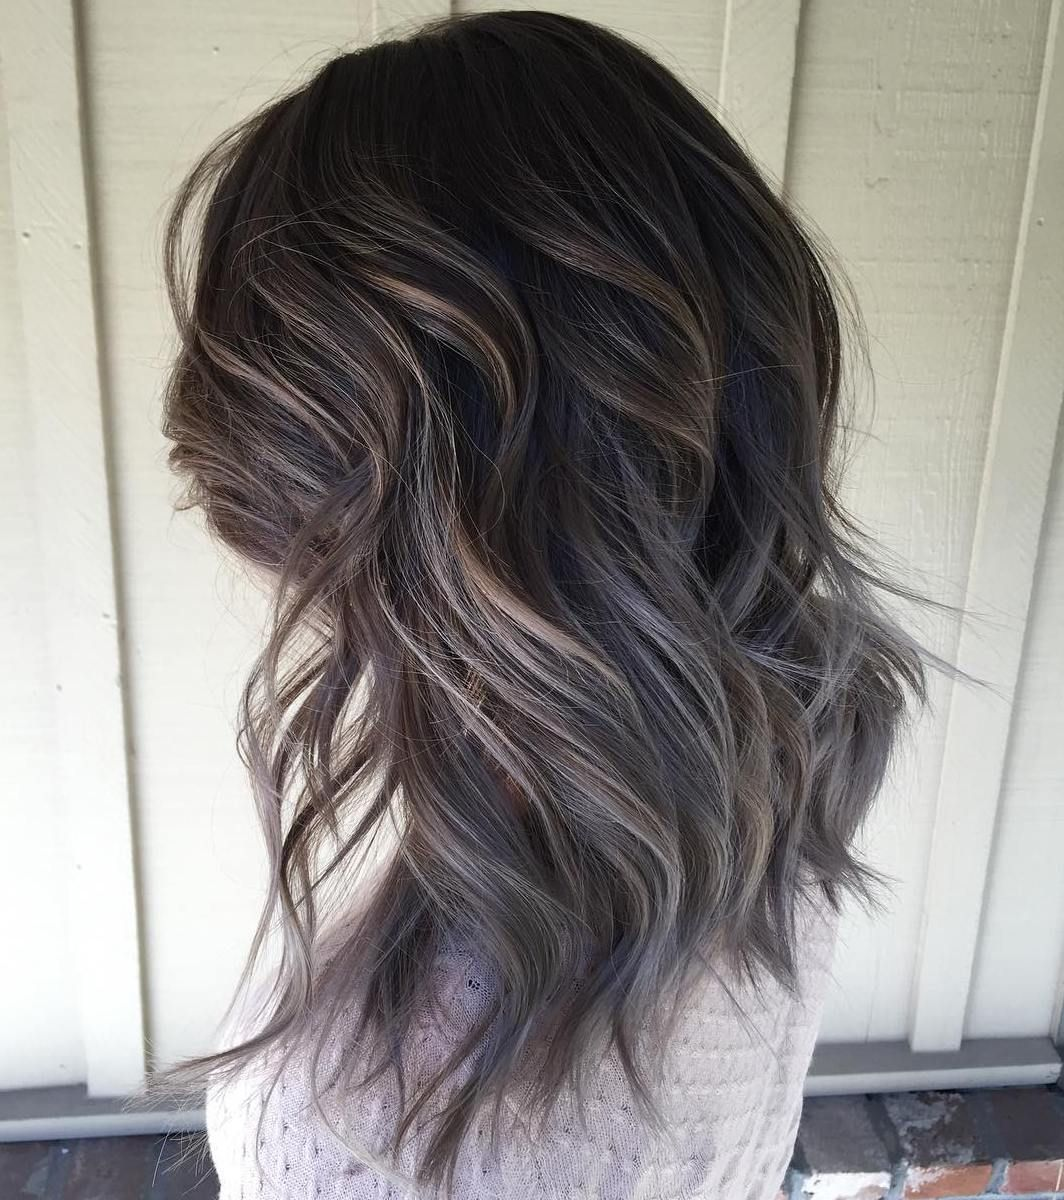 60 Shades Of Grey Silver And White Highlights For Eternal Youth Grey Hair Color Hair Styles Hair Highlights